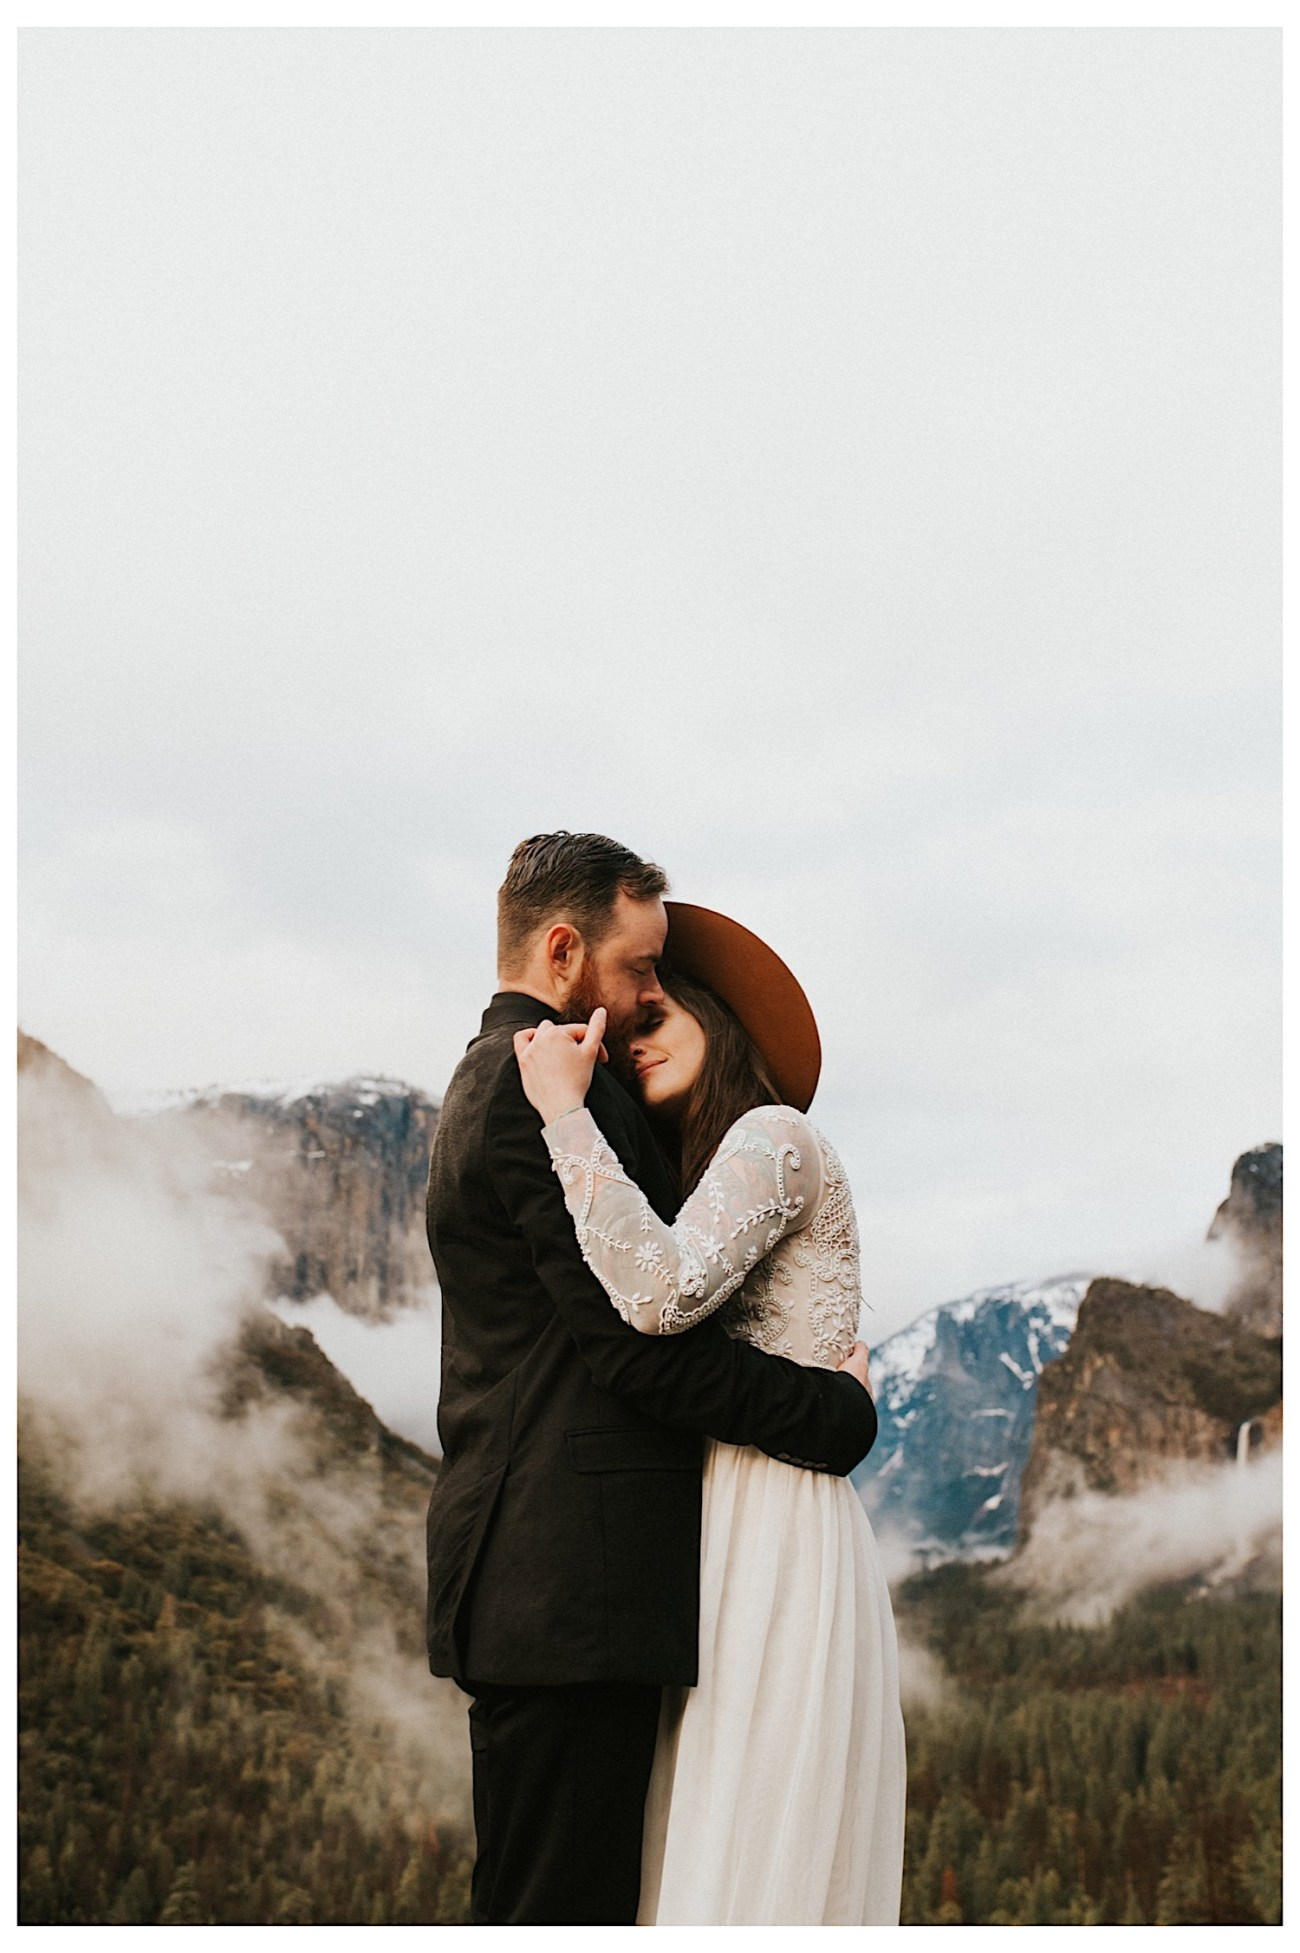 Reasons Why You Should Elope Top Reasons To Elope Elopement Photographer Yosemite National Park Elopement 018